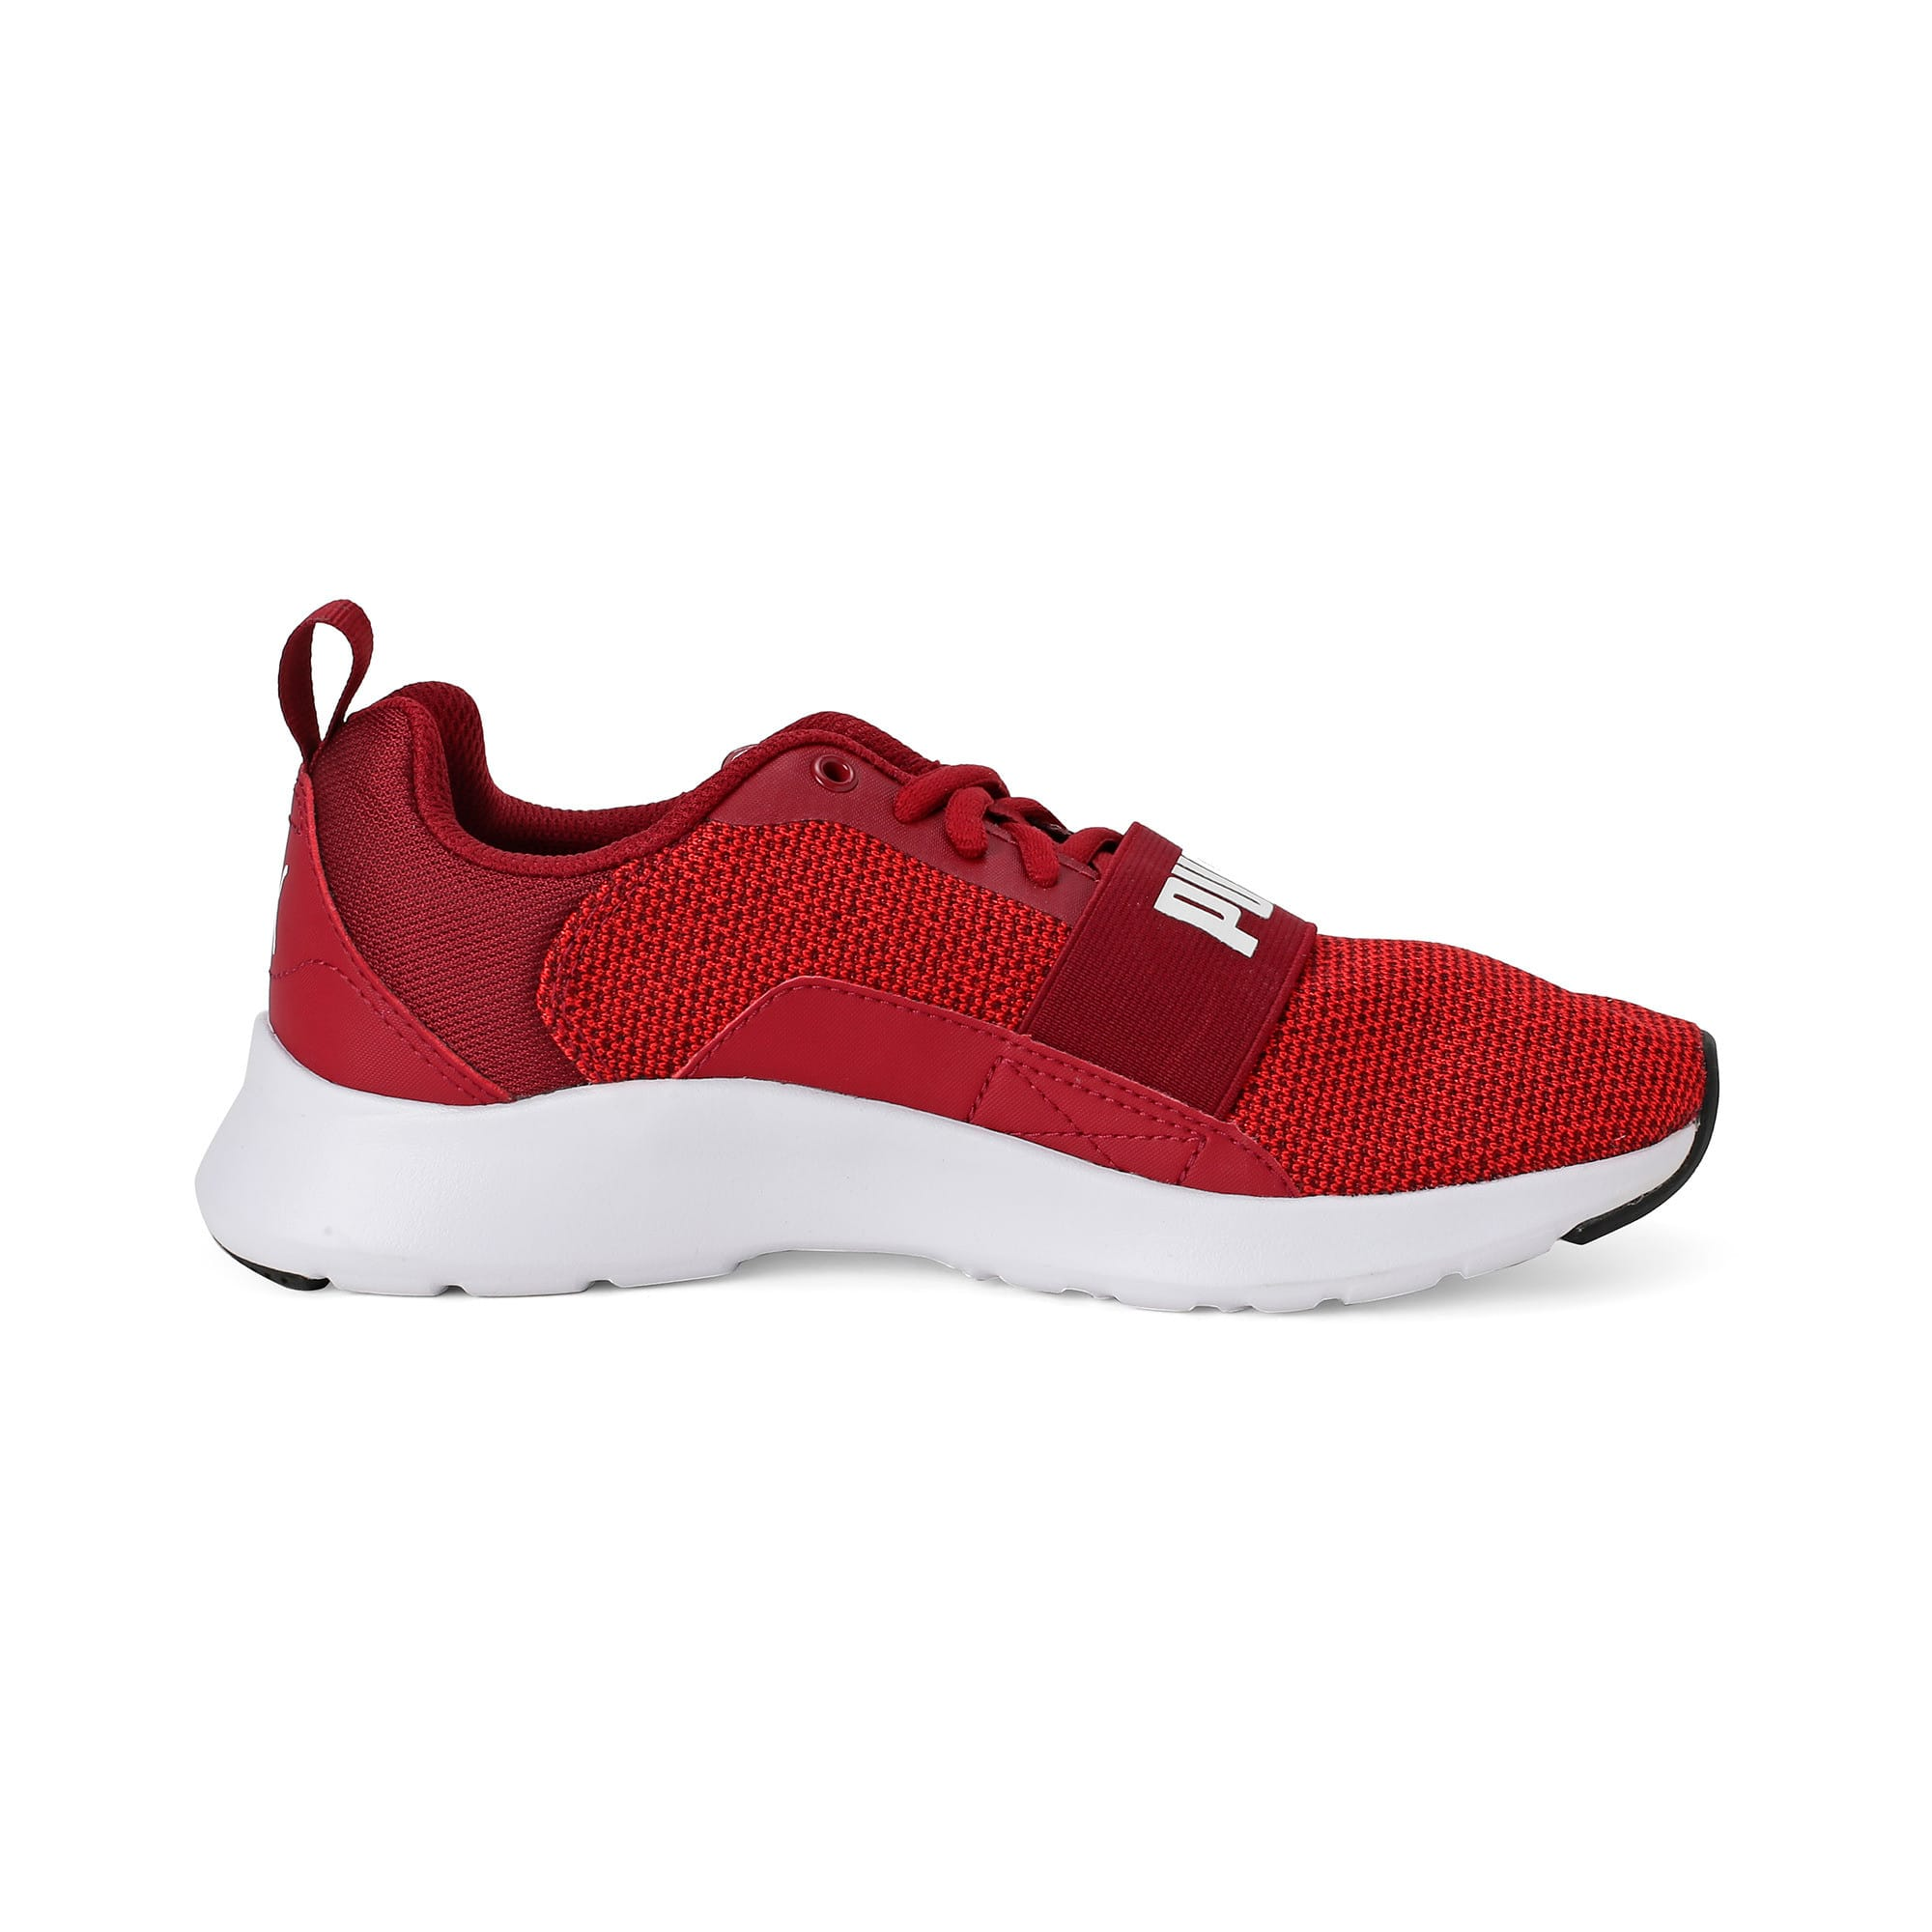 Thumbnail 2 of Wired Knit Kids' Trainers, Rhubarb-Puma White, medium-IND